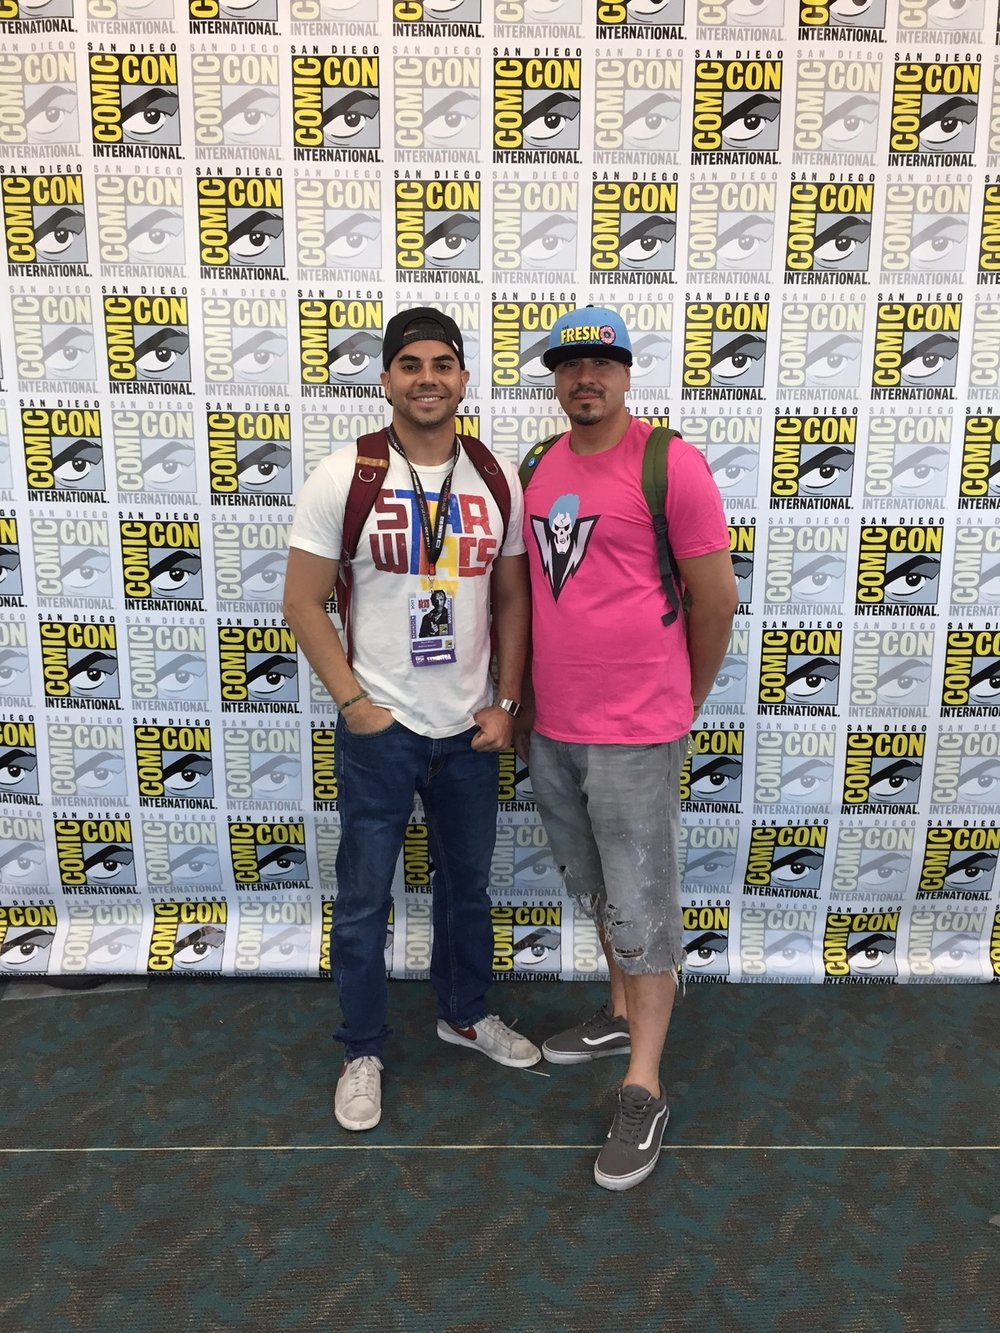 San Diego Comic Con 2017 - Miguel Wilson and Nerdy Chavez